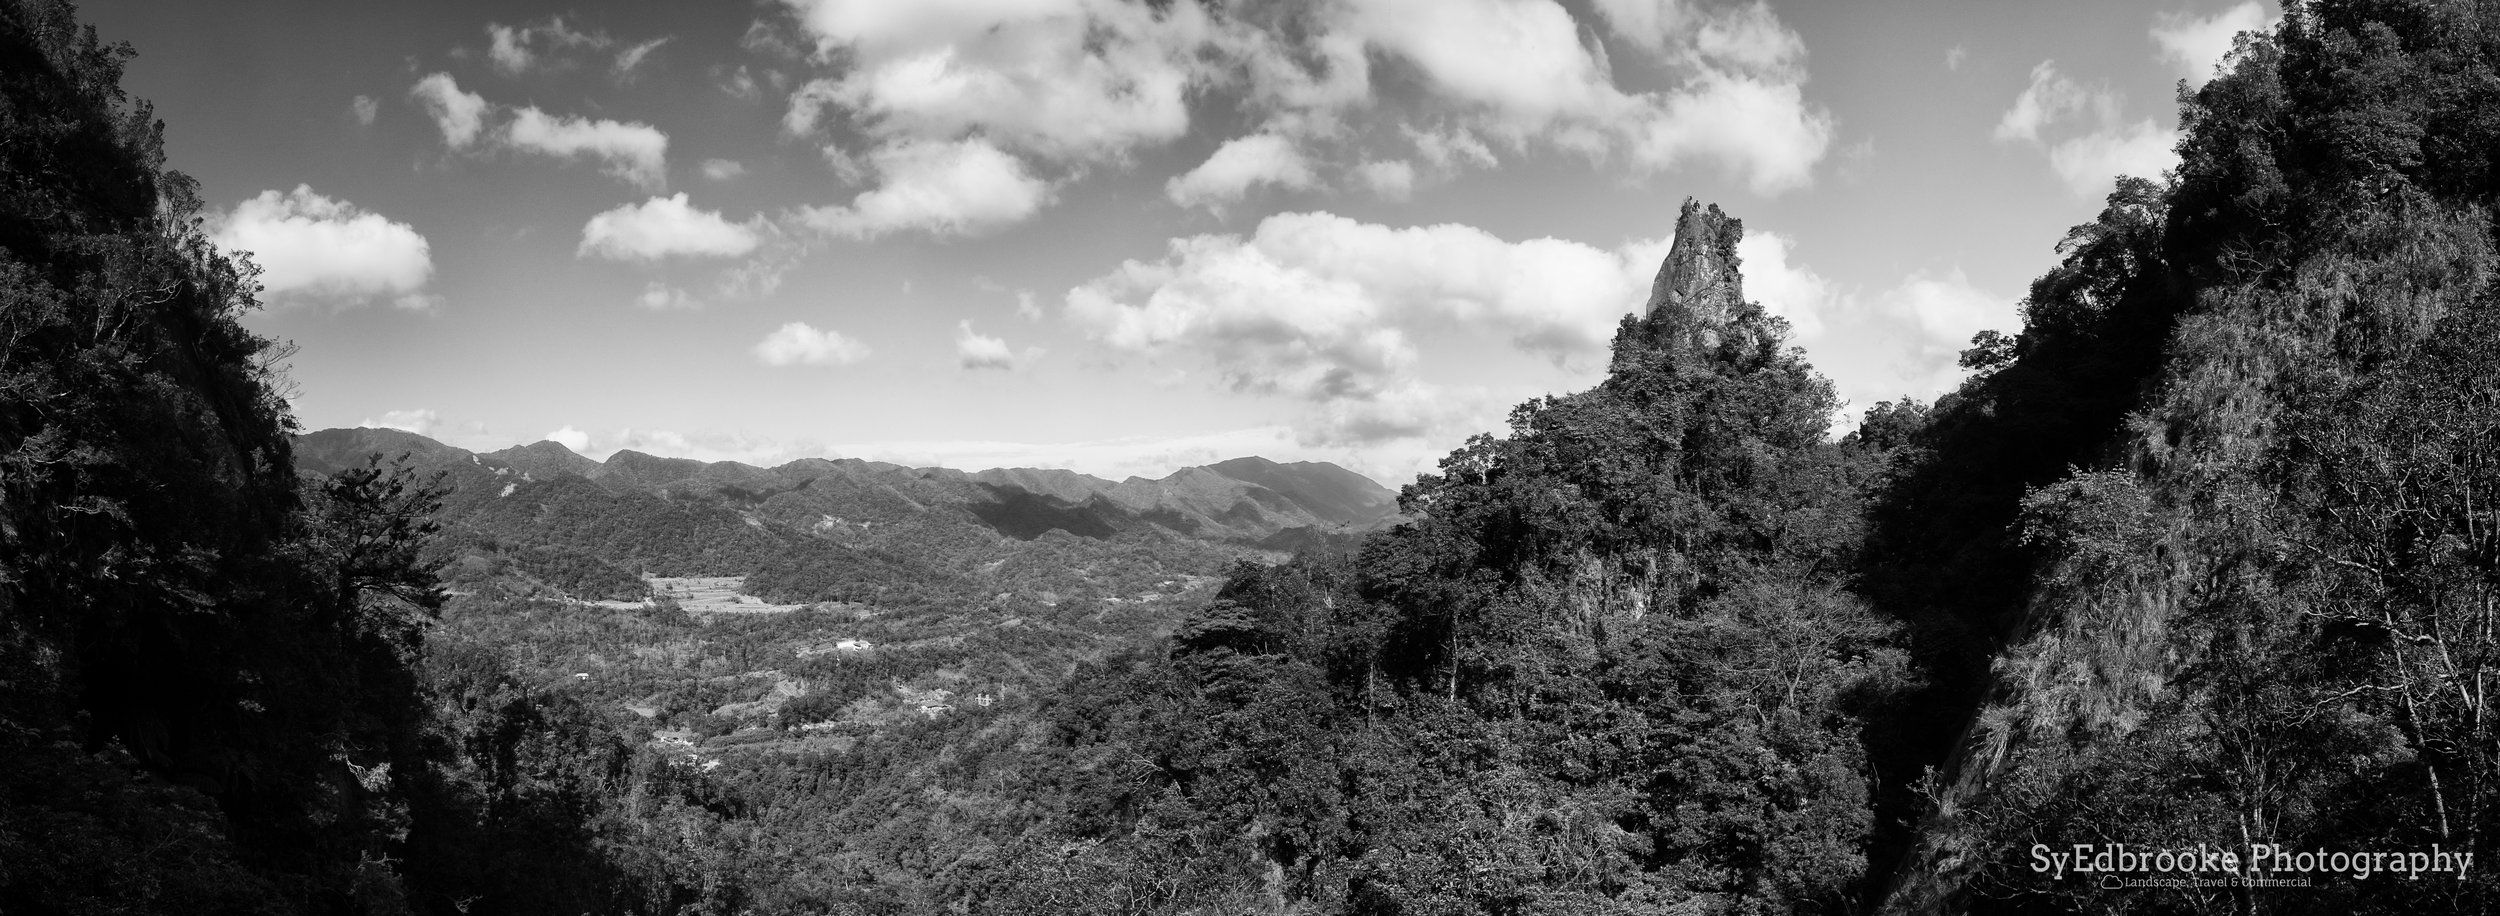 A view of Xiaozi from the valley. f3.5, ISO 200, 1/640, 24mm (stitched)